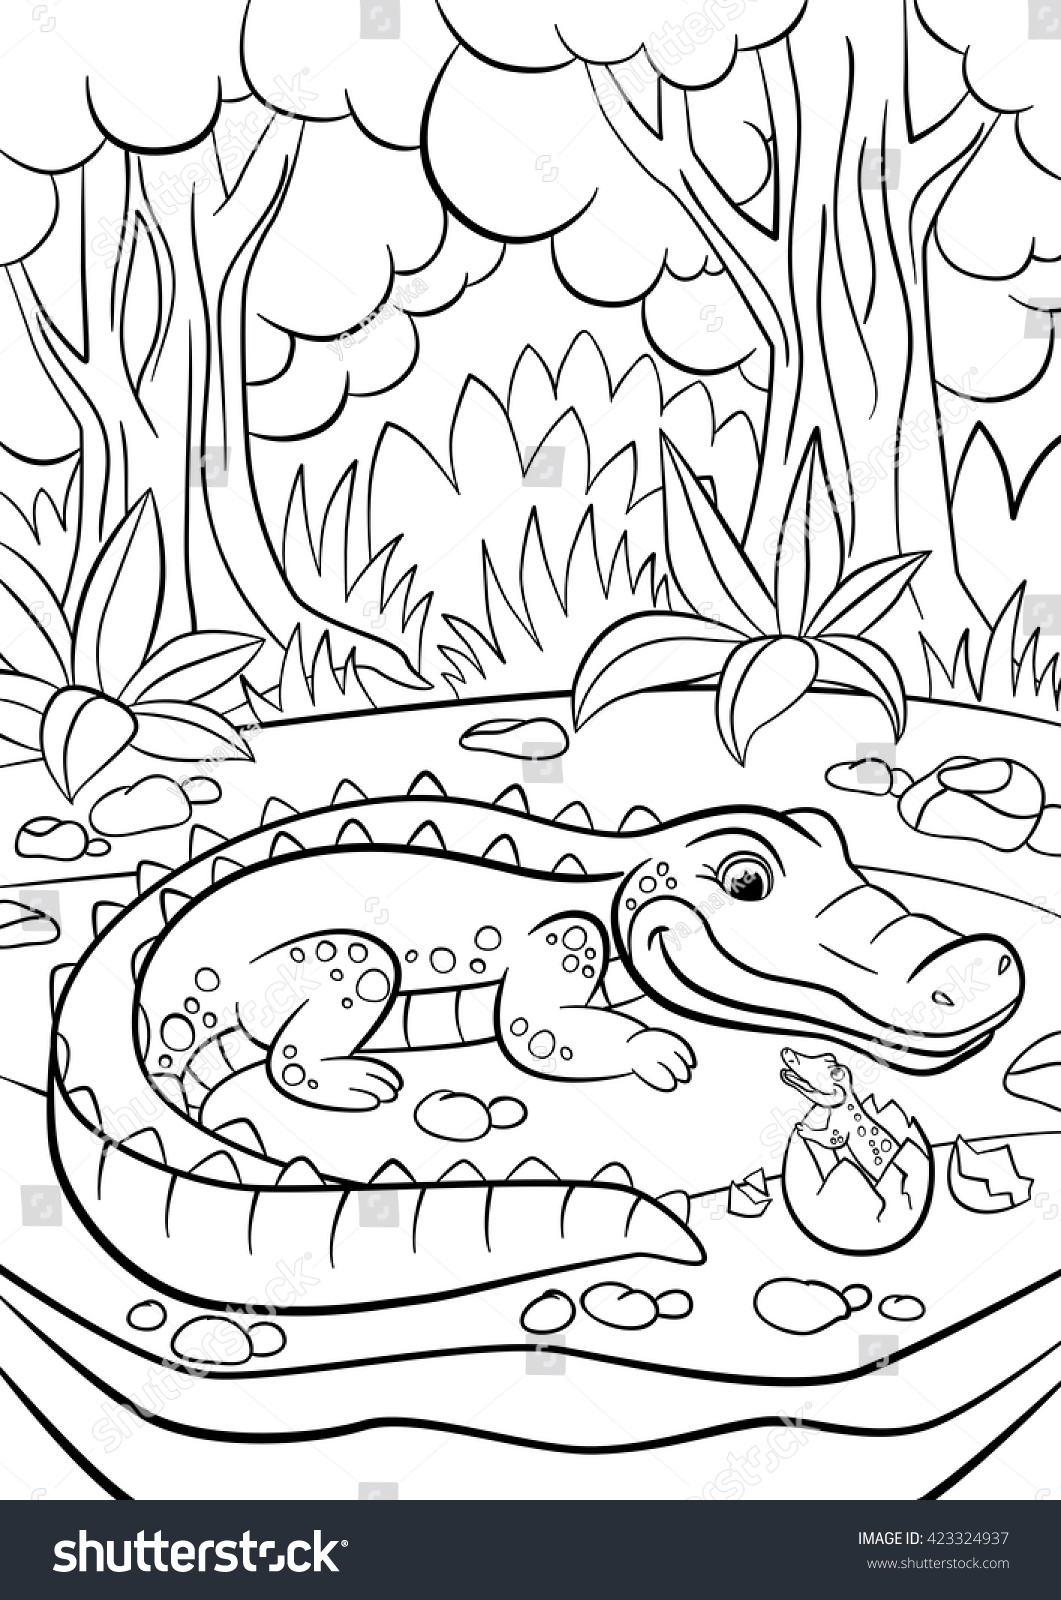 Coloring Pages Animals Mother Alligator Looks Stock Vector 423324937 ...